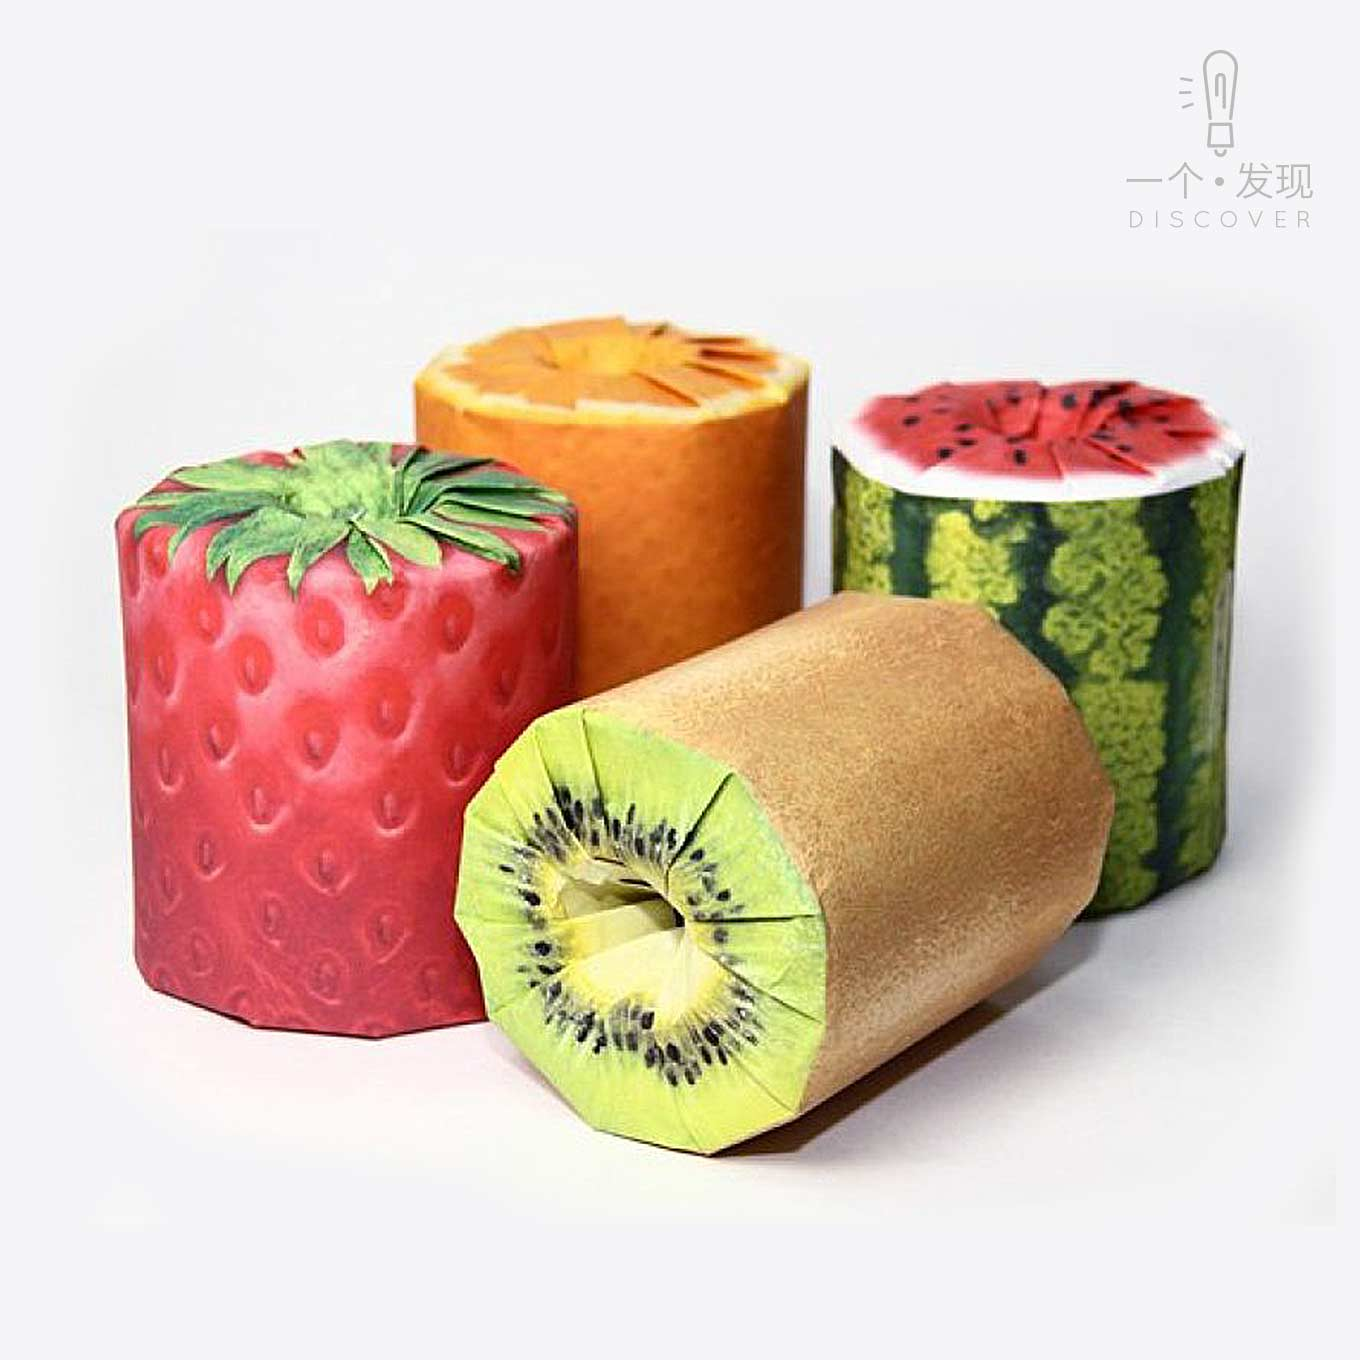 777 a recommendation Creative fruit tissue Not everything is good for fruit